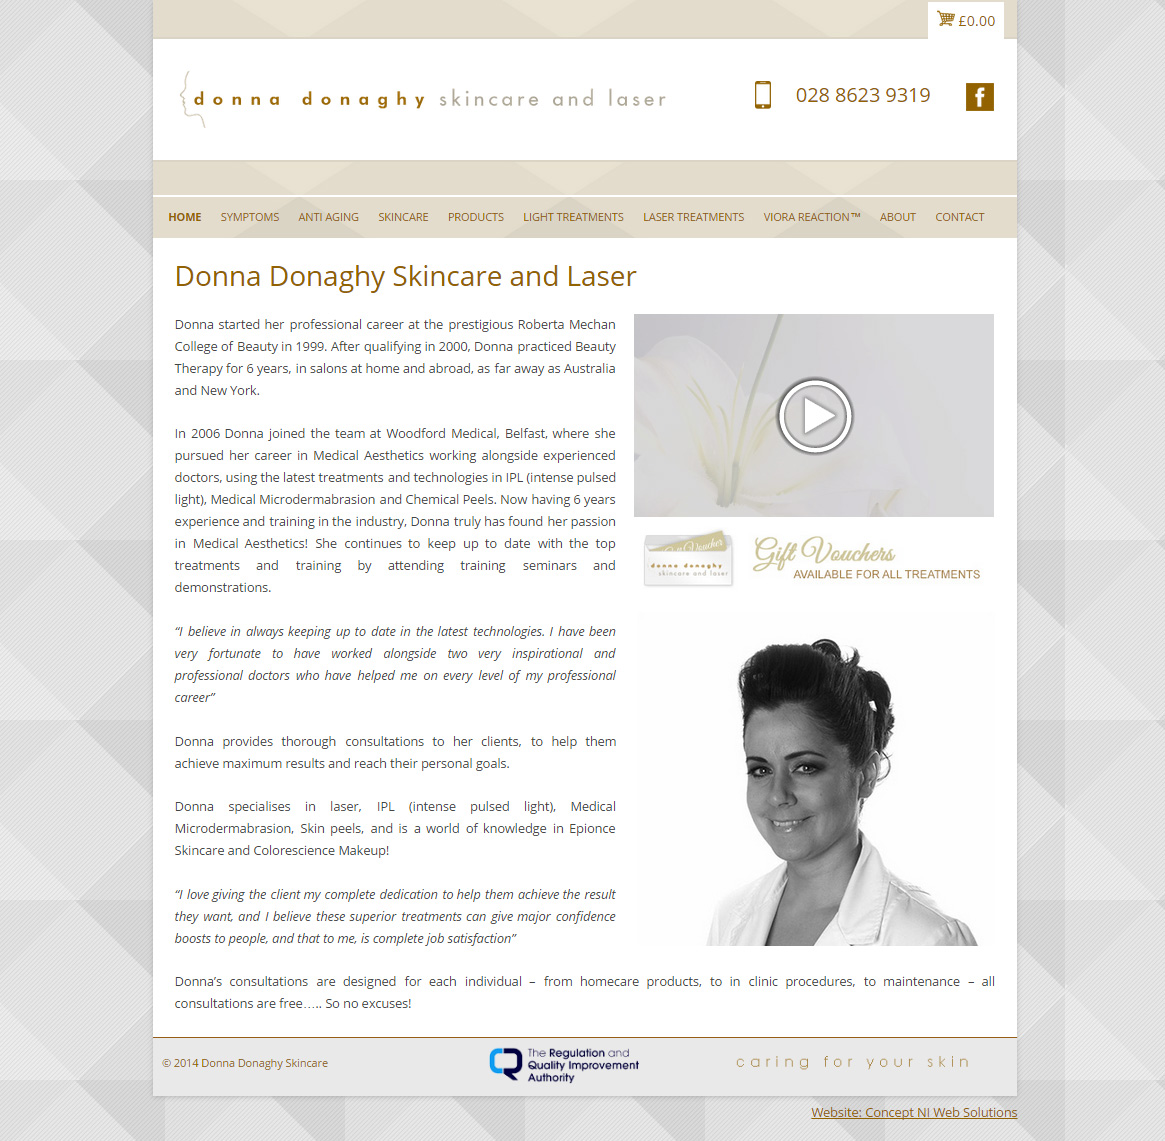 Donna Donaghy Skincare